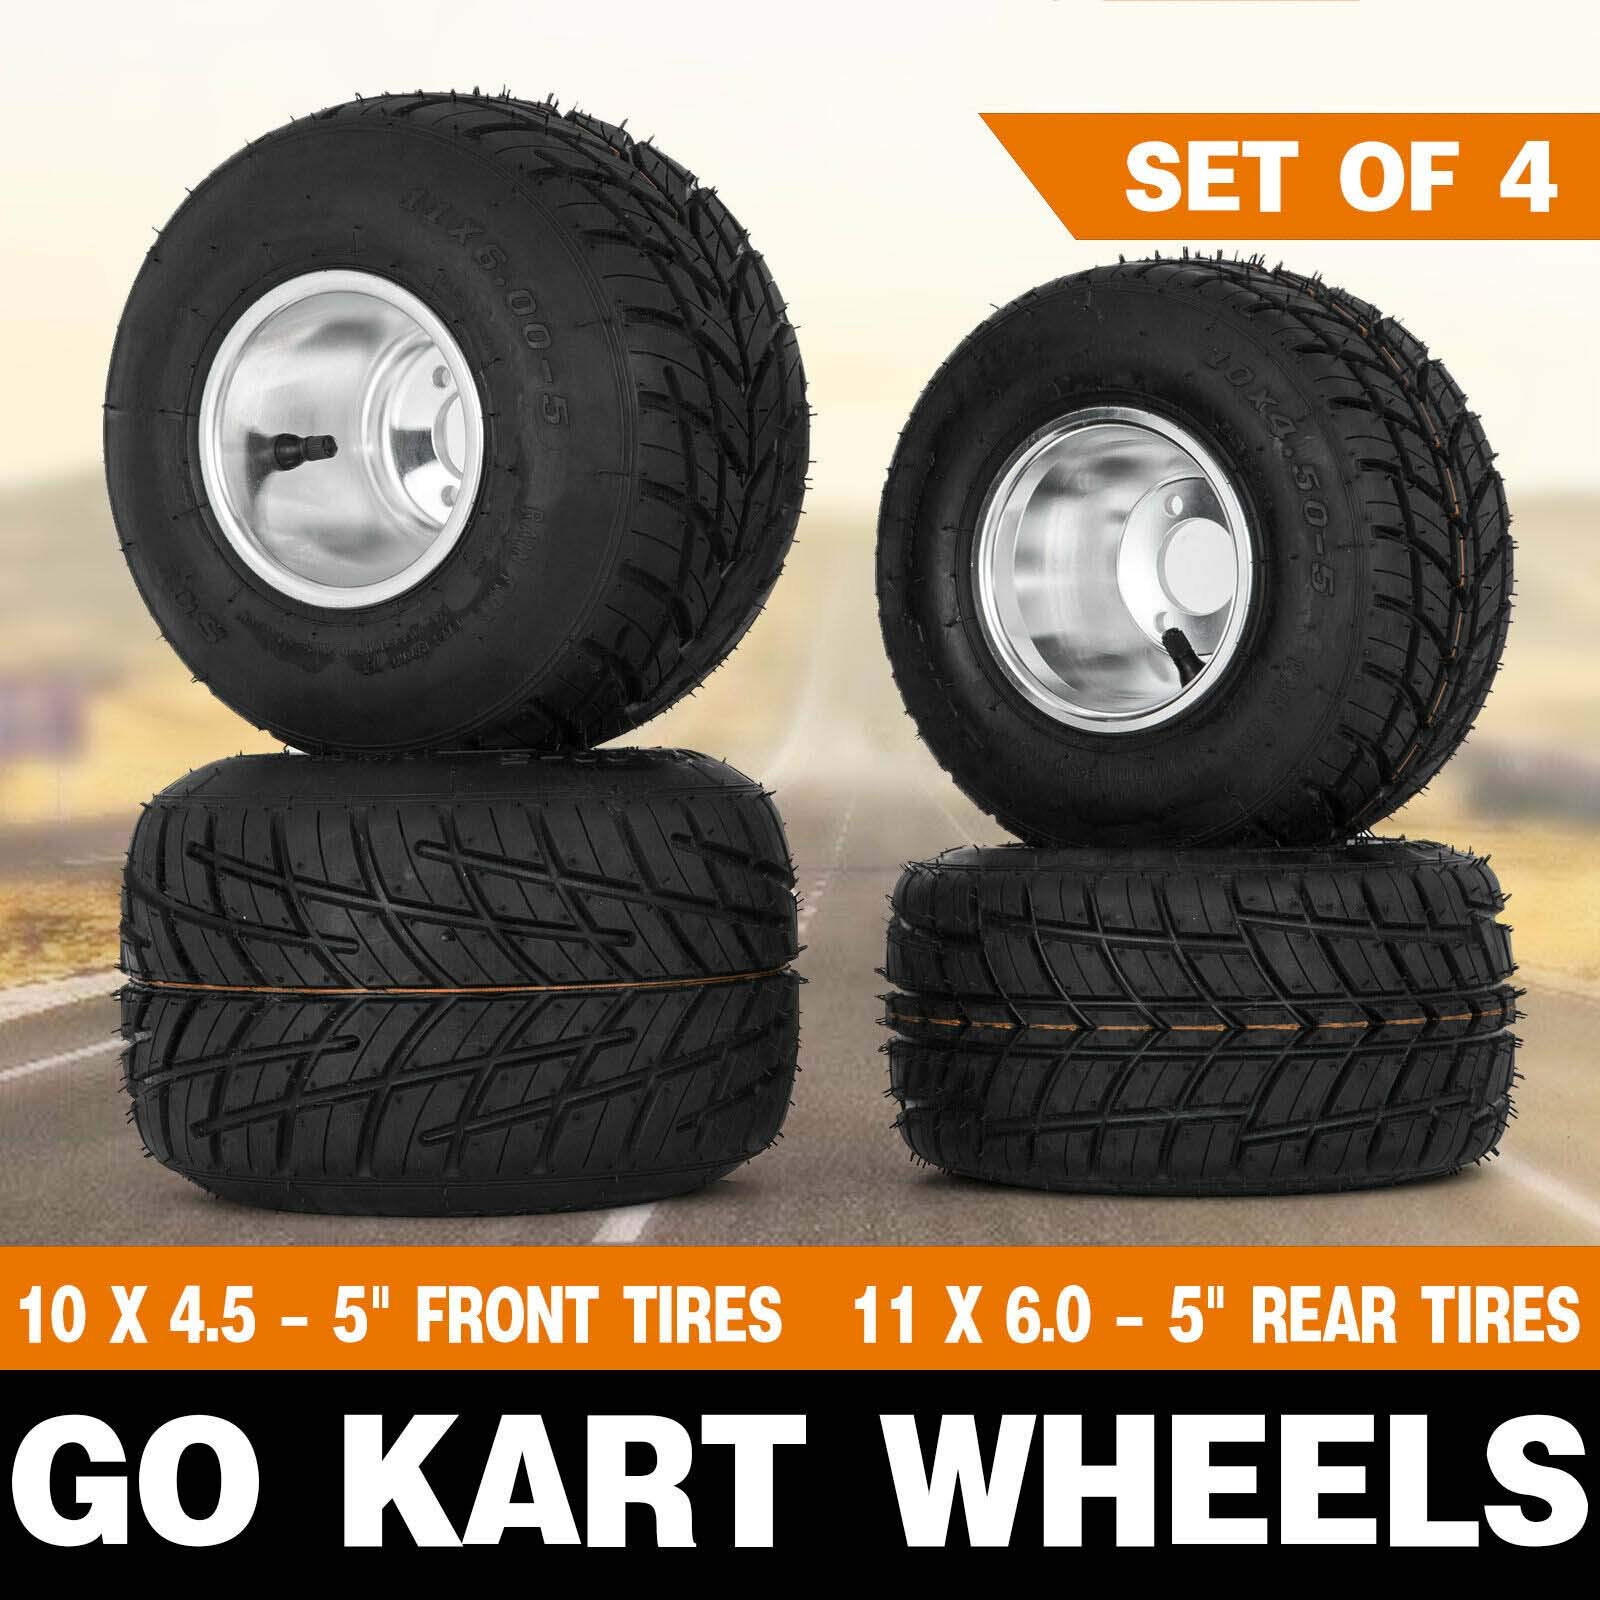 Snow Shop Everything Will fit on Most Go Kart/Huffy Slider/Drift Trike/Buggy/Project Go Kart Wheels Go Kart Rain Tires Set of 4 Rim & Tyre Durable 10X4.50-5 11x6.0-5